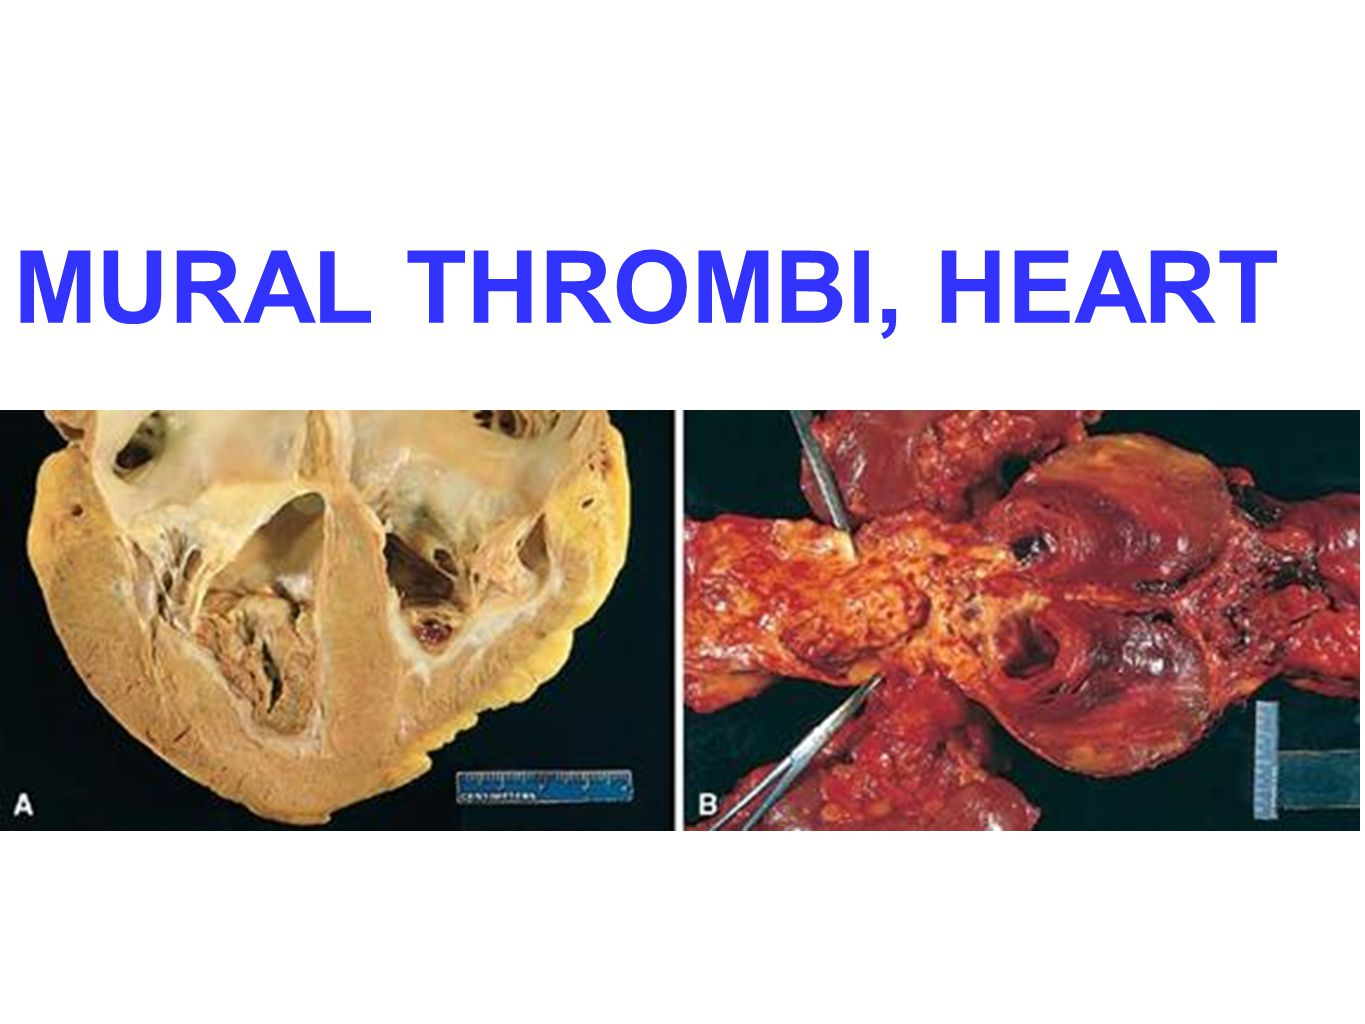 Hemodynamic disorders ppt video online download for Mural thrombi